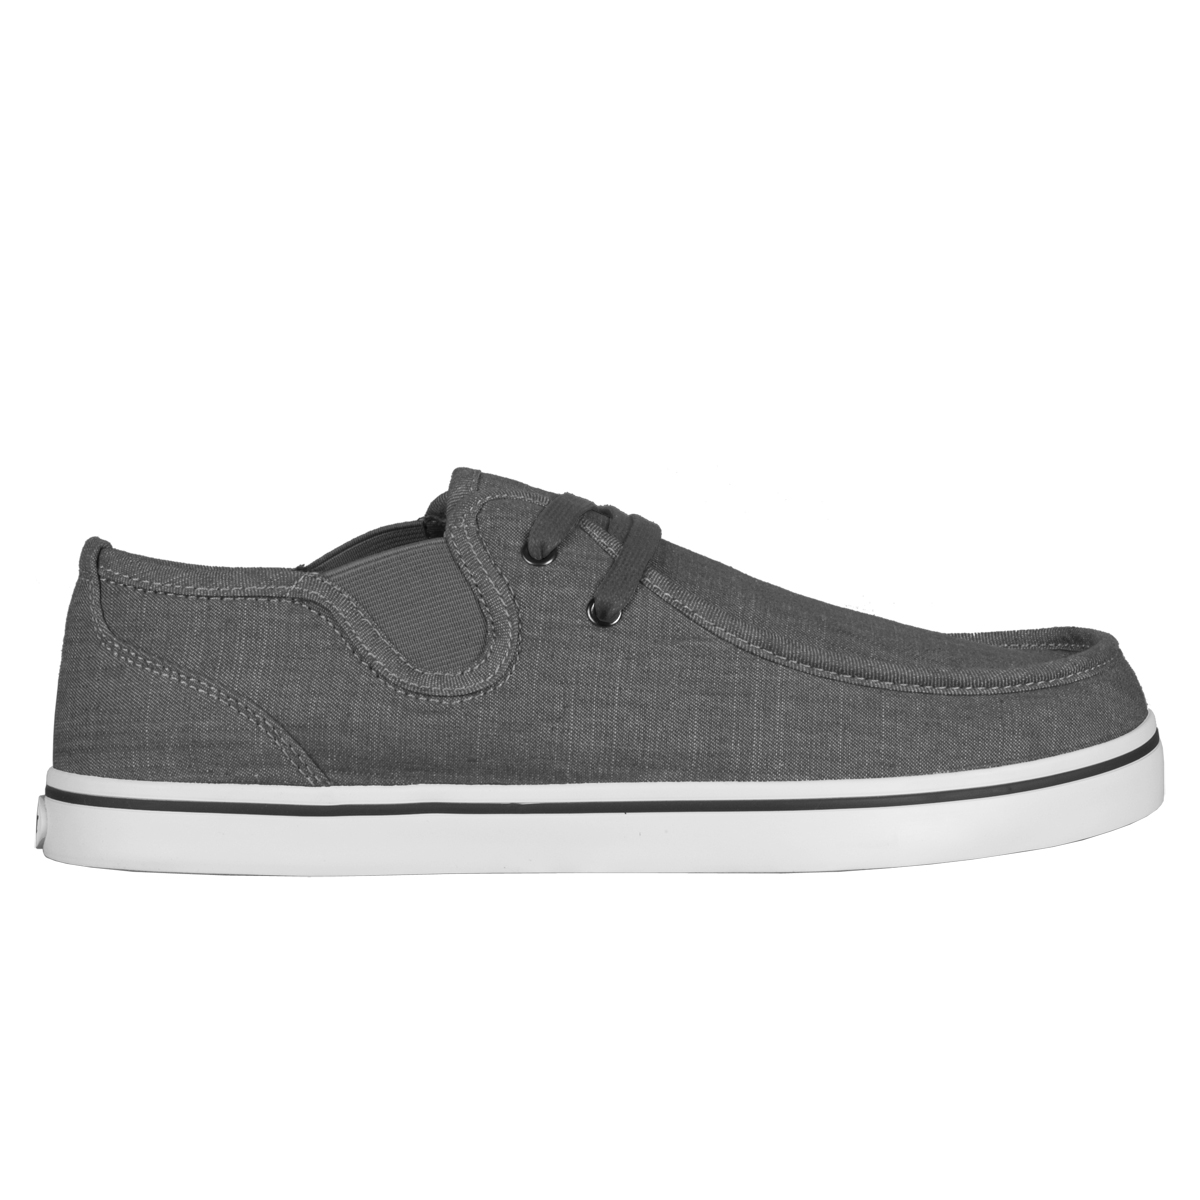 Lugz Sparks Slip Denim Mens Shoe Charcoal/White